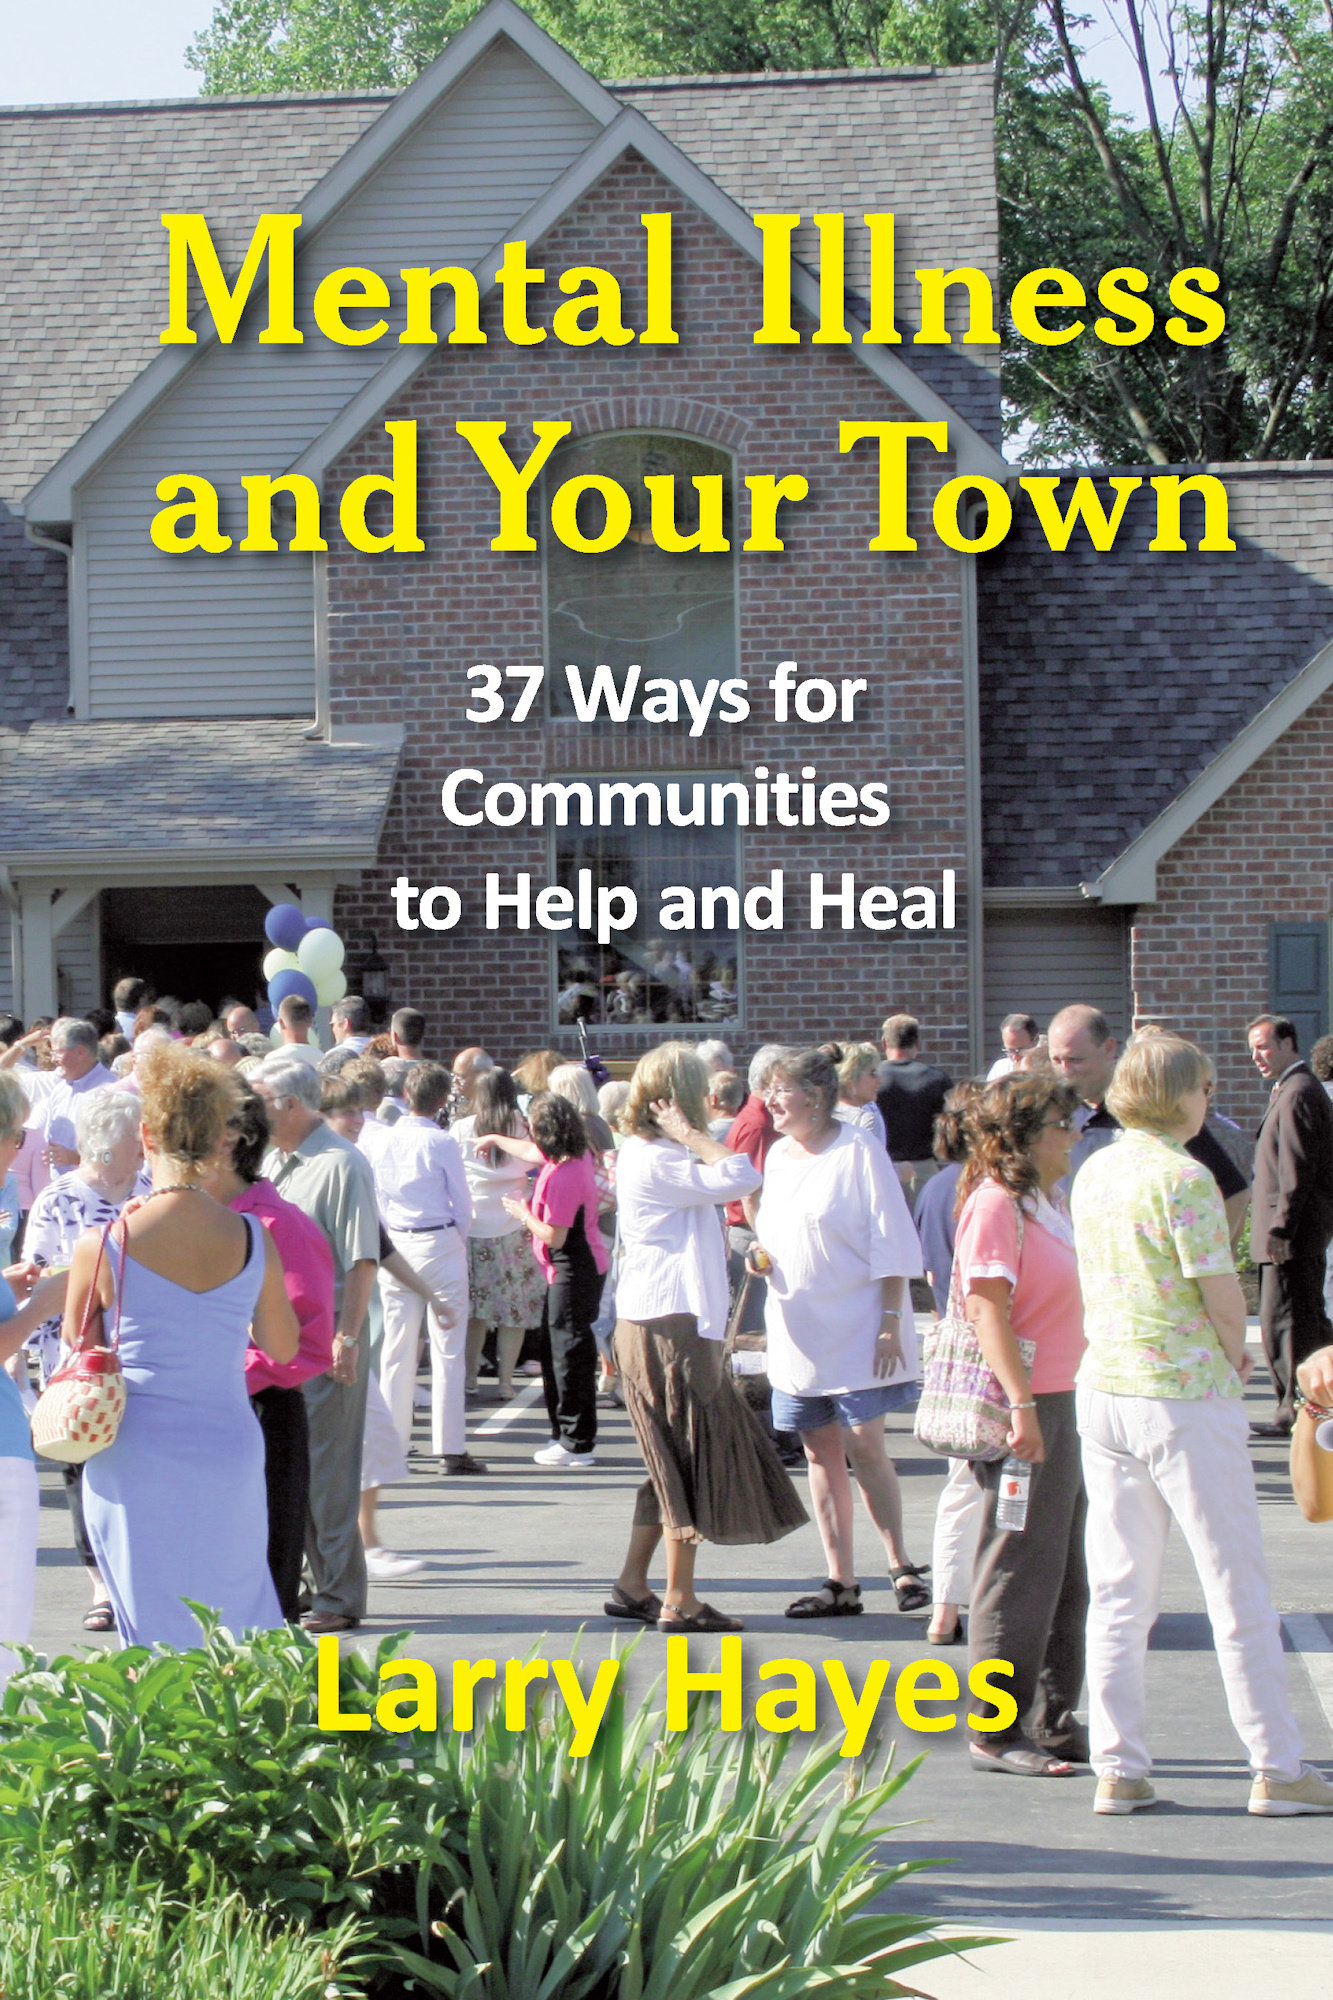 Mental Illness and Your Town: 37 Ways for Communities to Help and Heal 978-1-932690-76-7